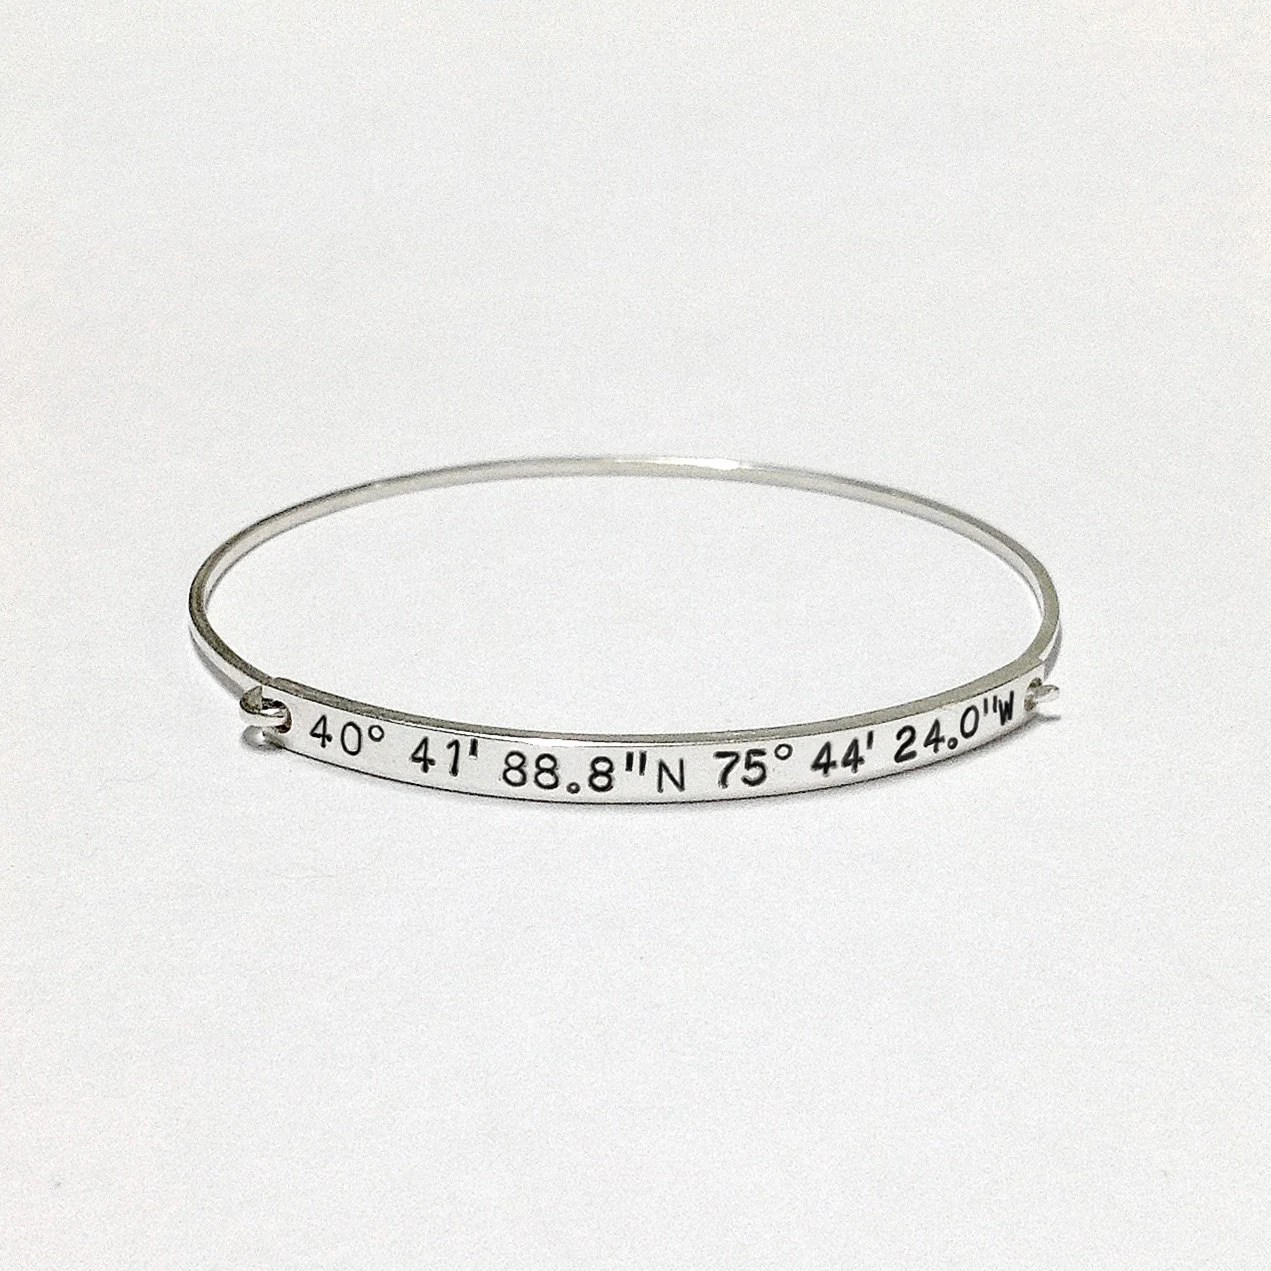 20% OFF: Coordinates Bracelet With Hidden Message by